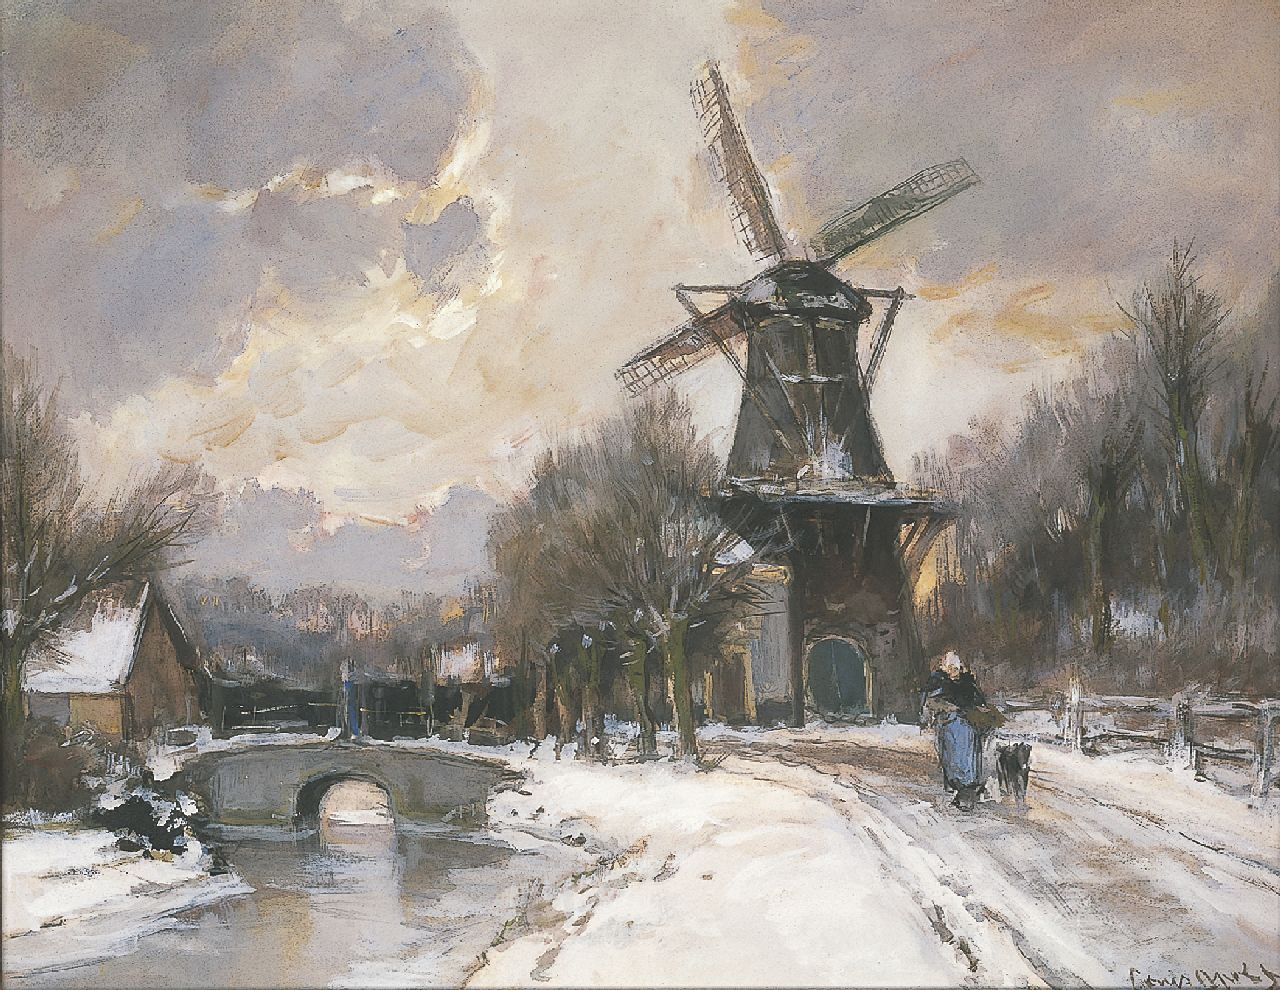 Apol L.F.H.  | Lodewijk Franciscus Hendrik 'Louis' Apol, Flourmill, Parkweg Voorburg, watercolour and gouache on paper 43.0 x 54.2 cm, signed l.r.